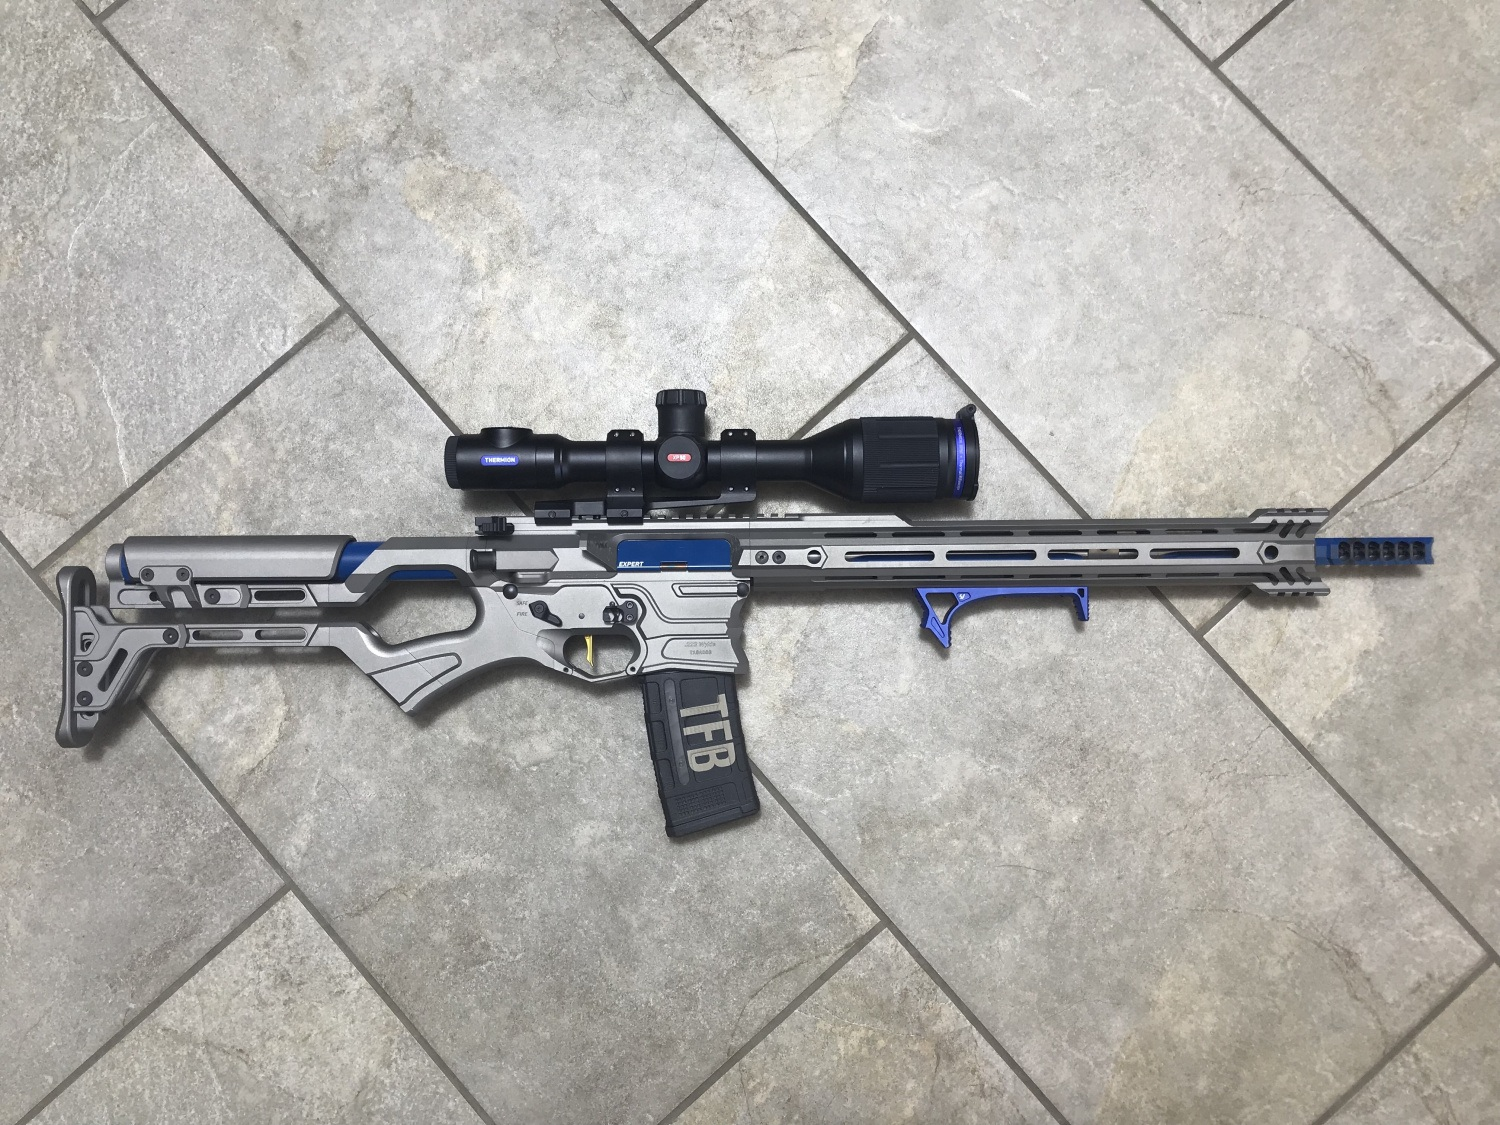 FRIDAY NIGHT LIGHTS: Pulsar Thermion XP50 Thermal Scope -The